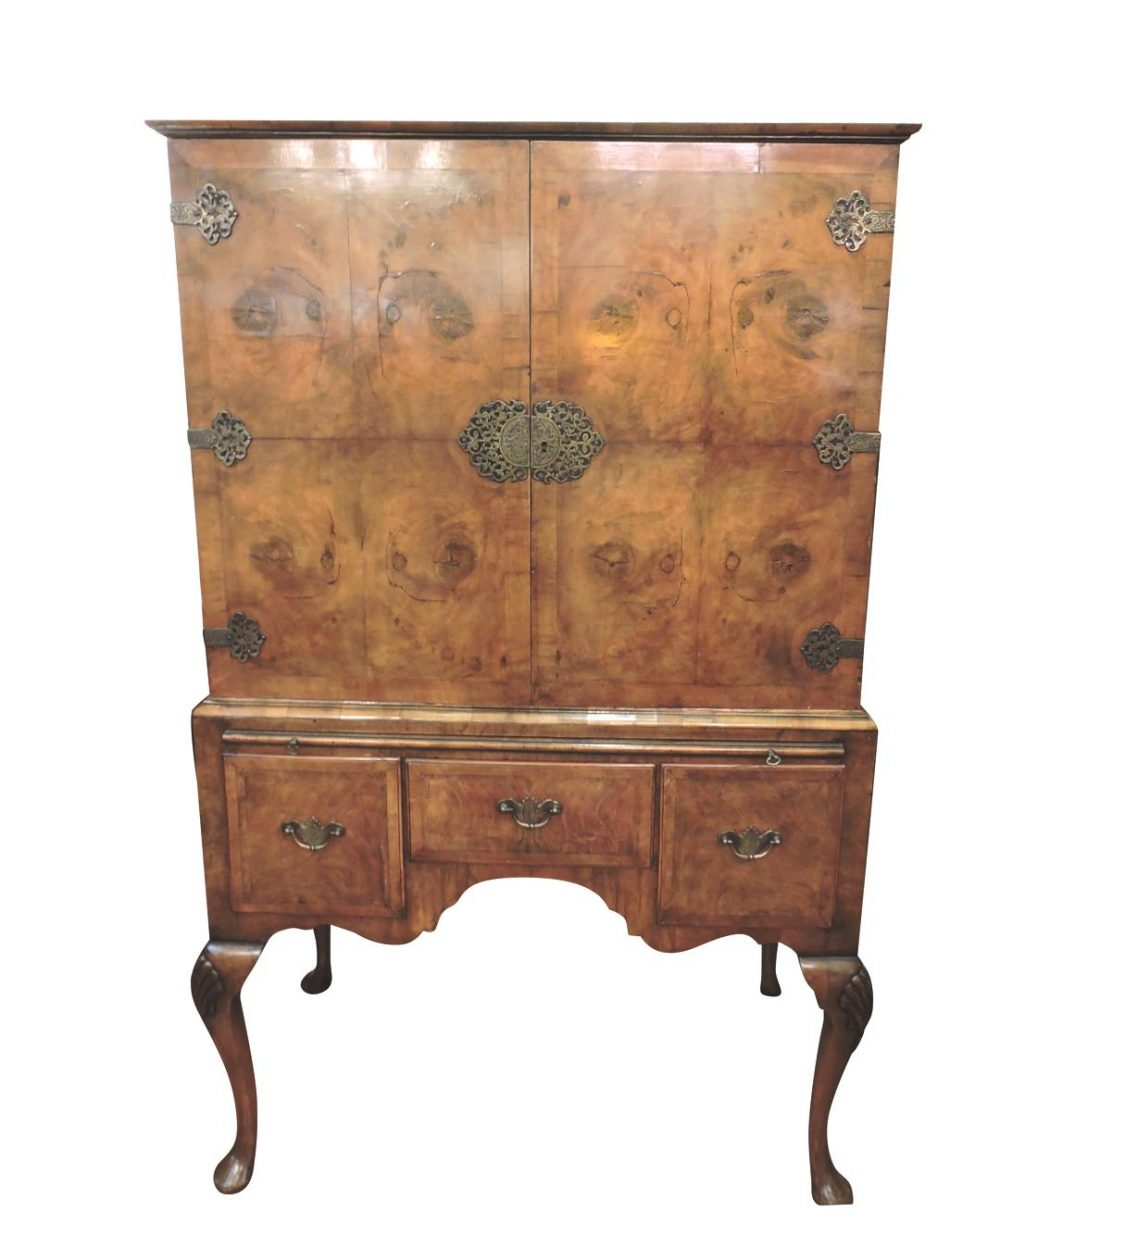 Outstanding Antique 19th C Burled Walnut Wood Lowboy Chest Table Queen Anne Banded Top Original Hardware at Vintageway Furniture 8008